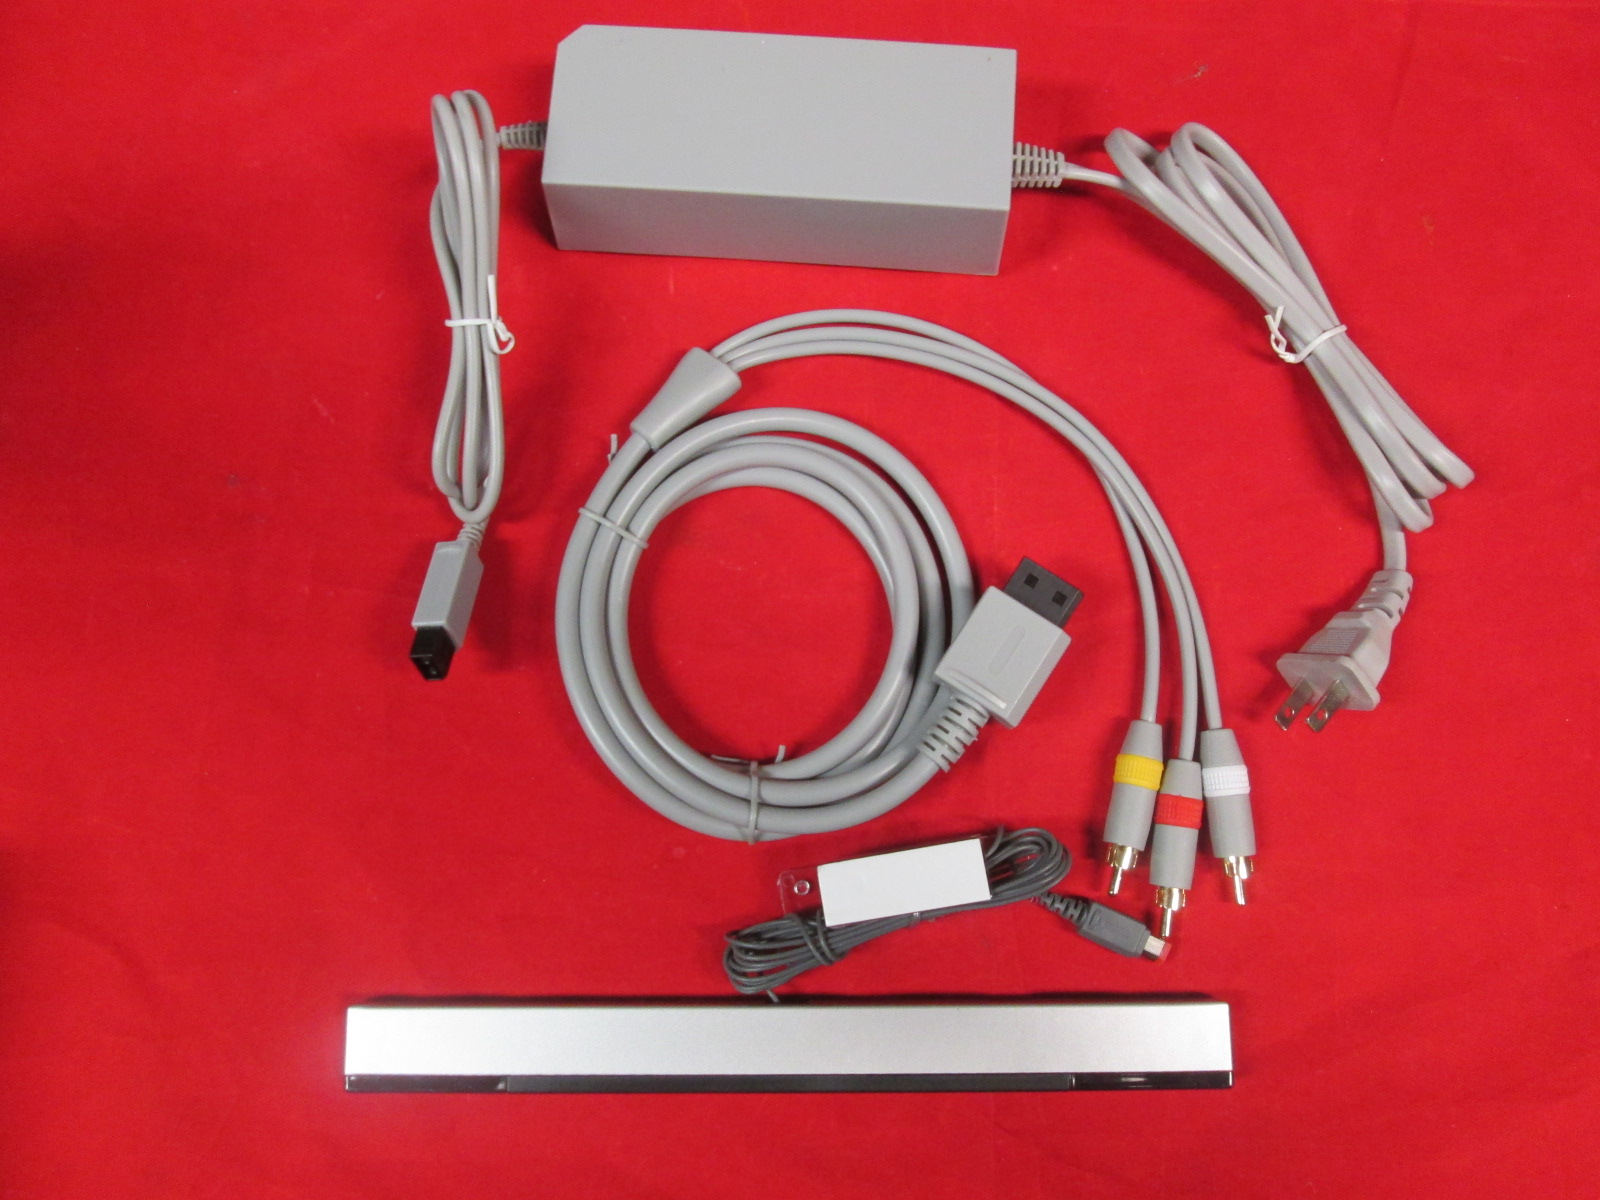 Complete Hookup Connection Kit Composite AV Cable Power Cord Sensor